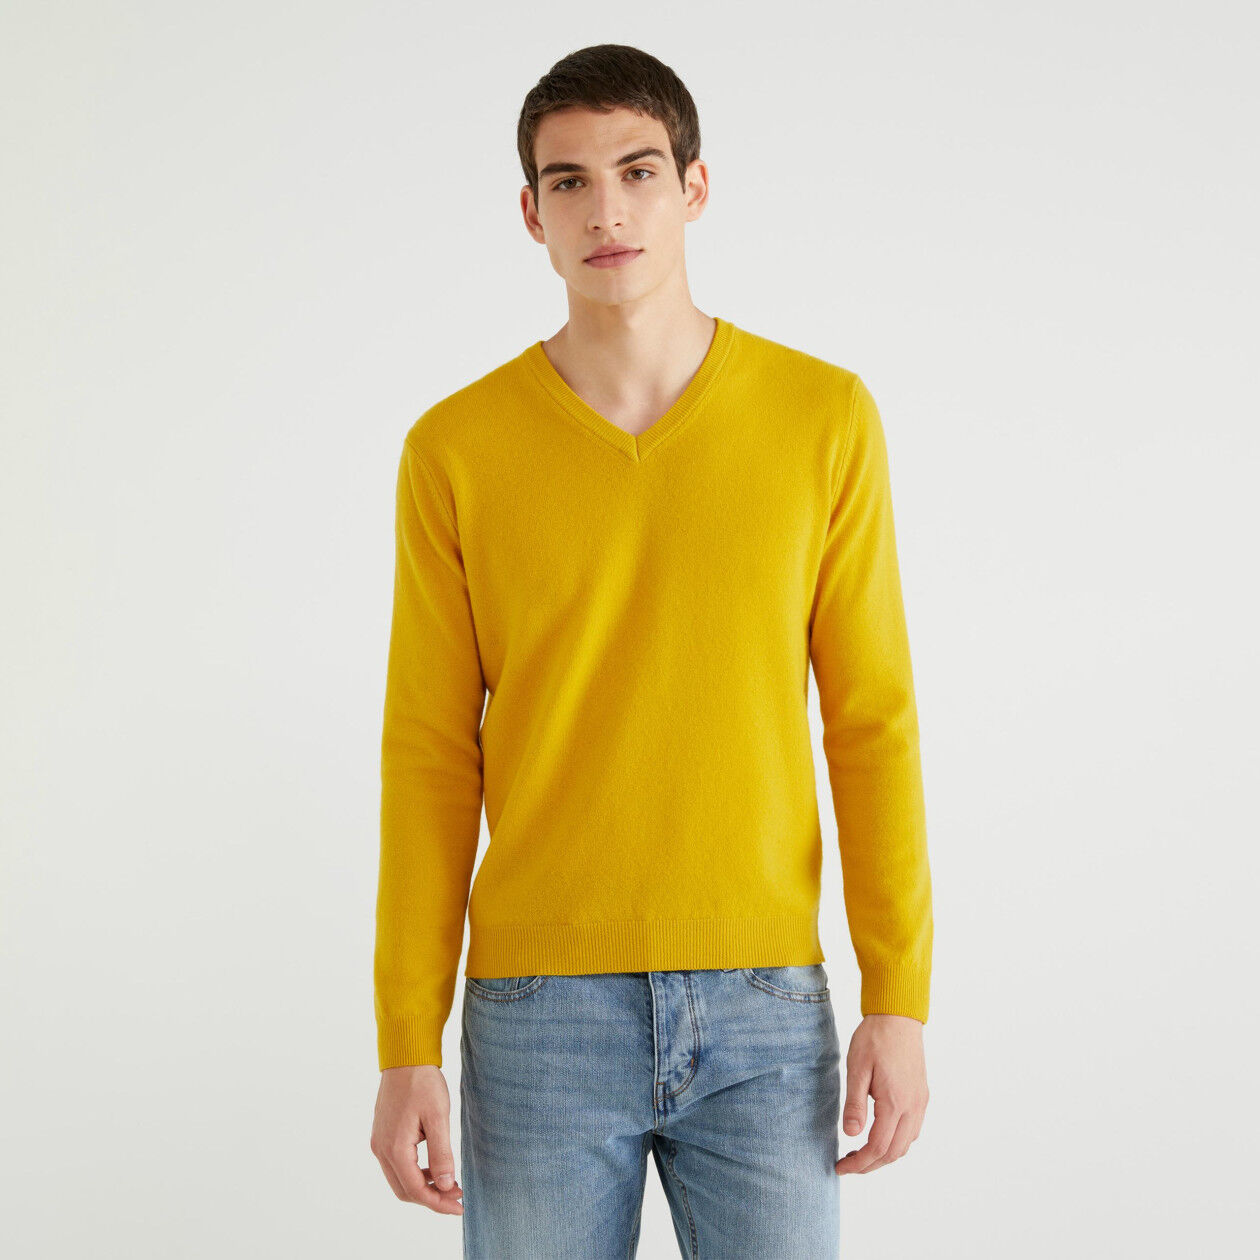 100% virgin wool V-neck sweater